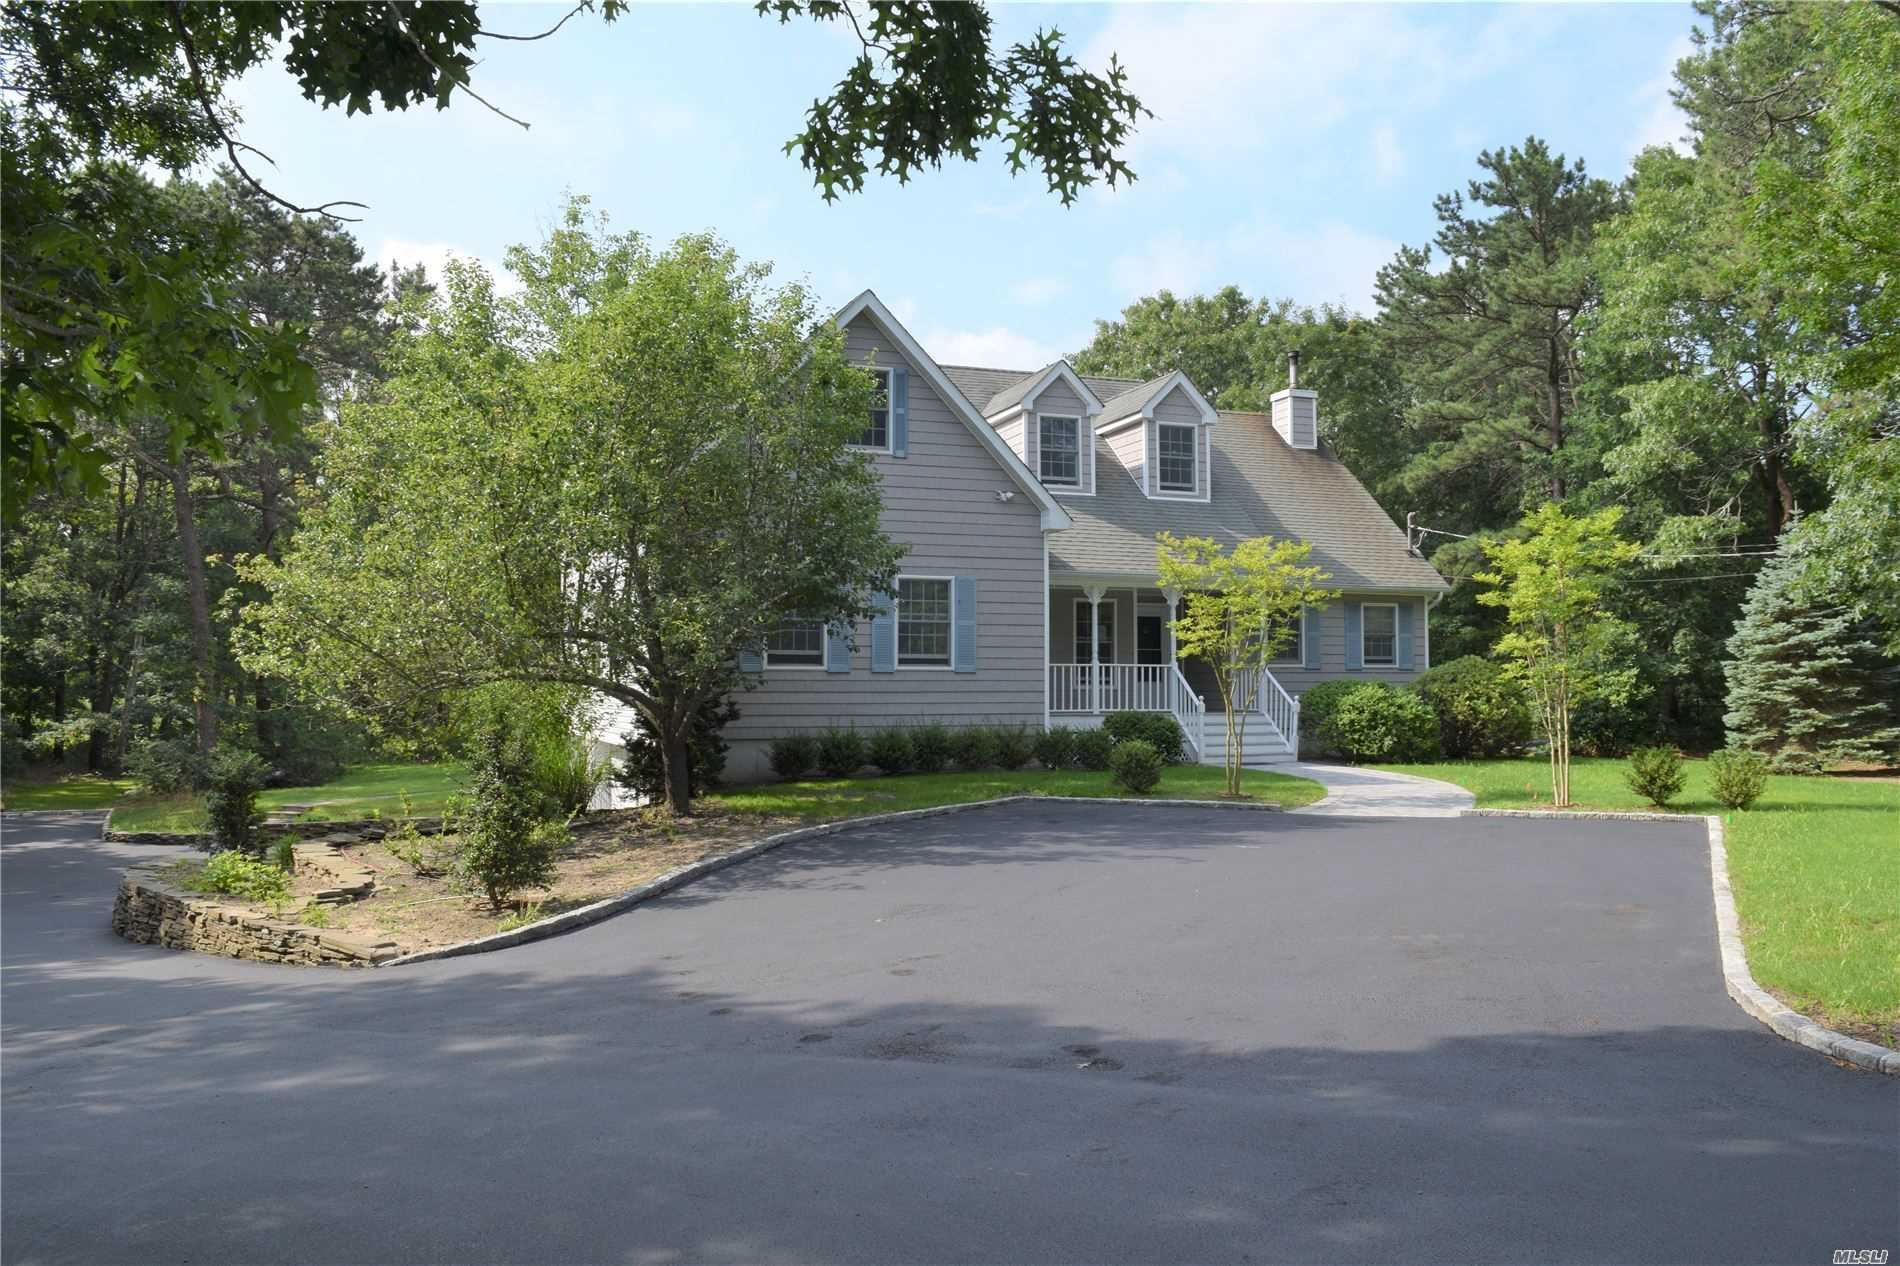 127 Old Country Road, East Quogue, NY 11942 - MLS#: 3212452